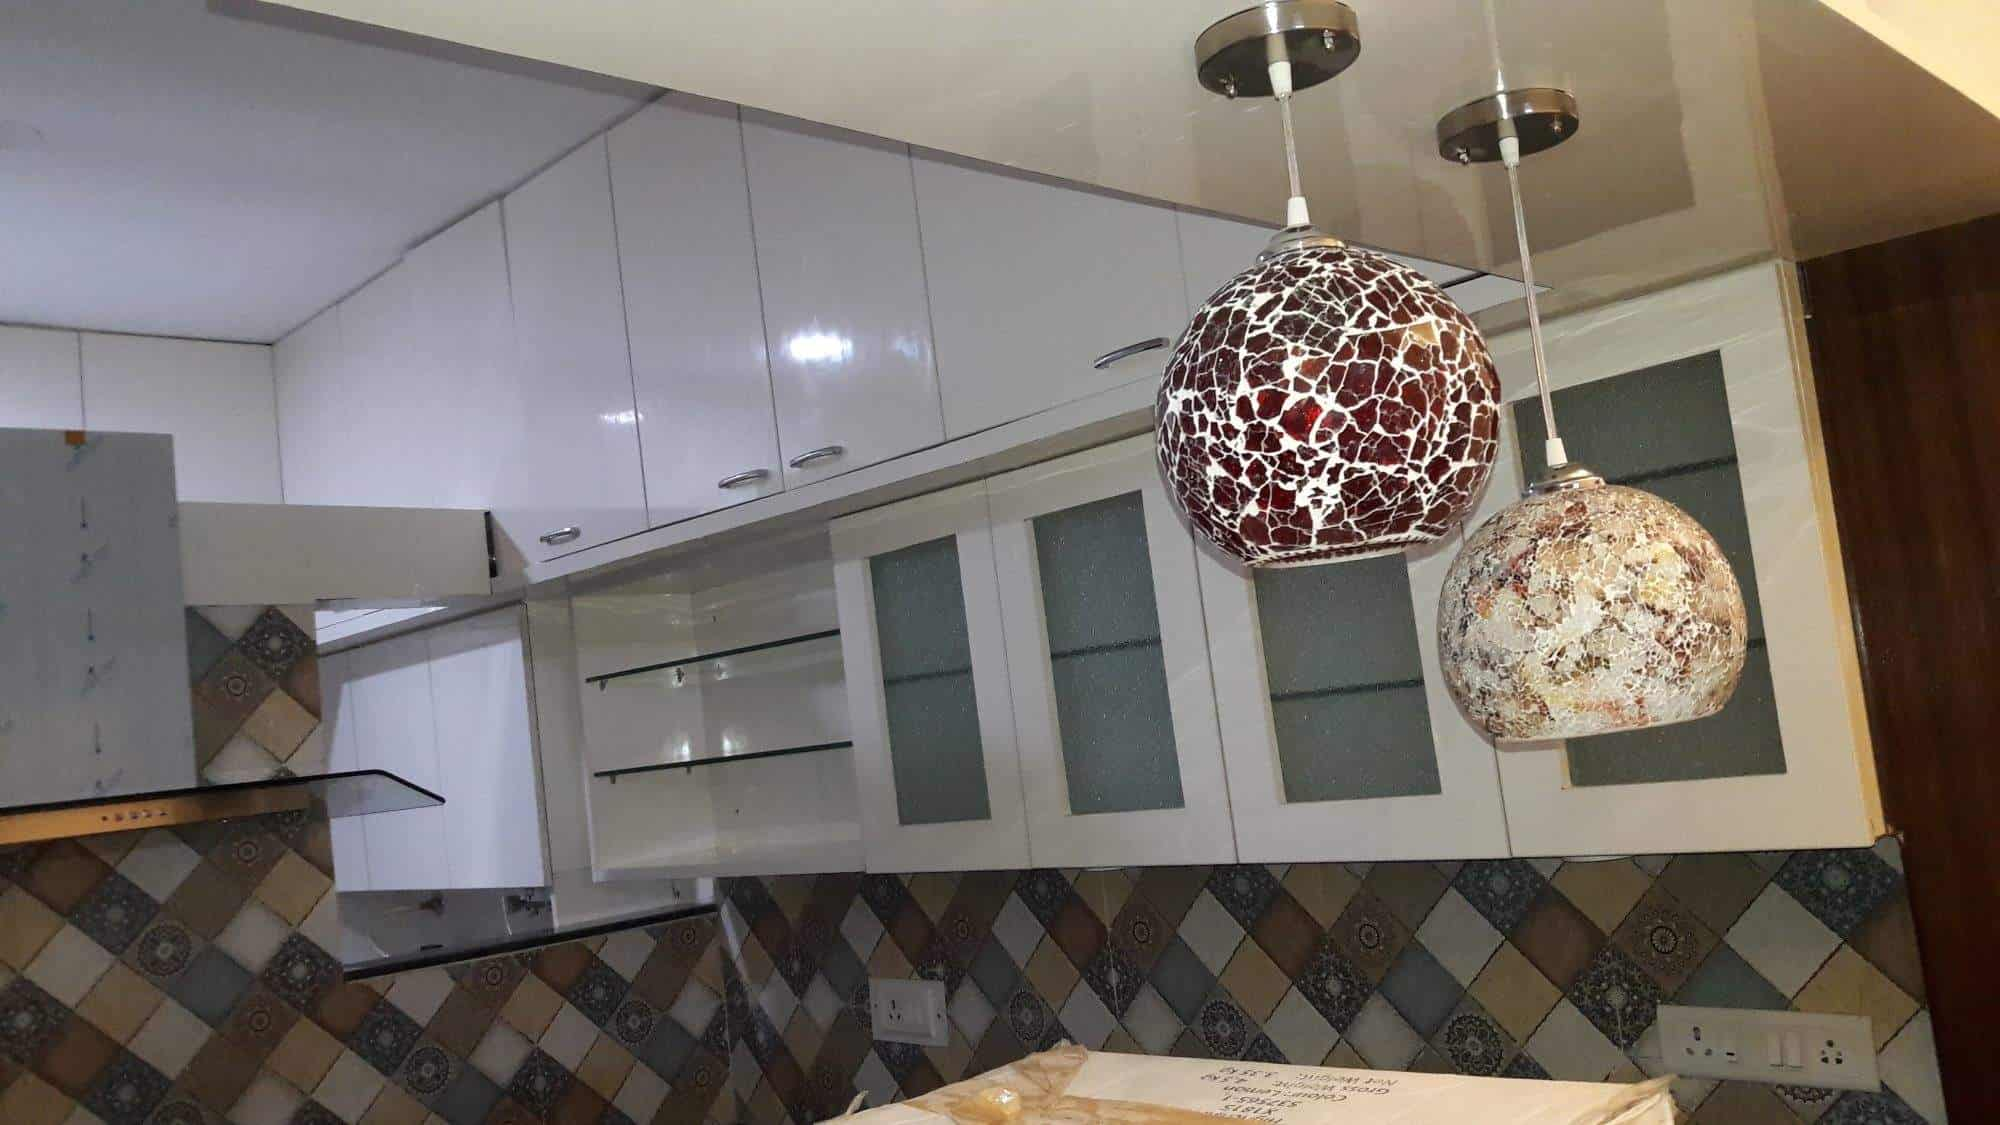 Chandelier cleaning services in bangalore musethecollective chandelier cleaning service in delhi musethecollective arubaitofo Images